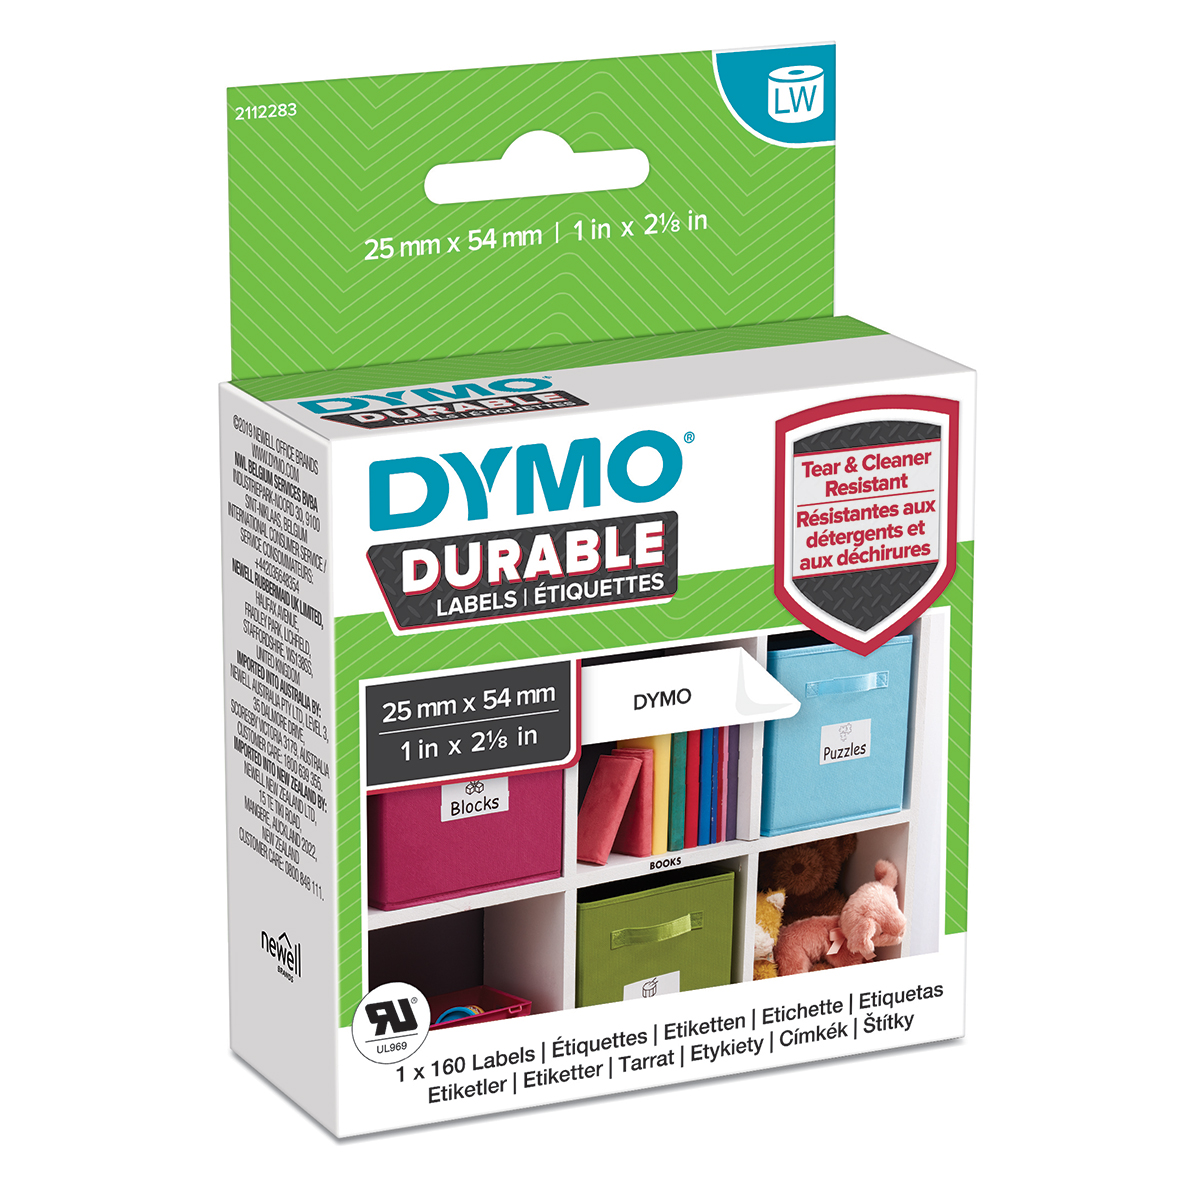 Dymo 2112283 LW Durable Small Multi Purpose Label 25mm x 54mm Black on White